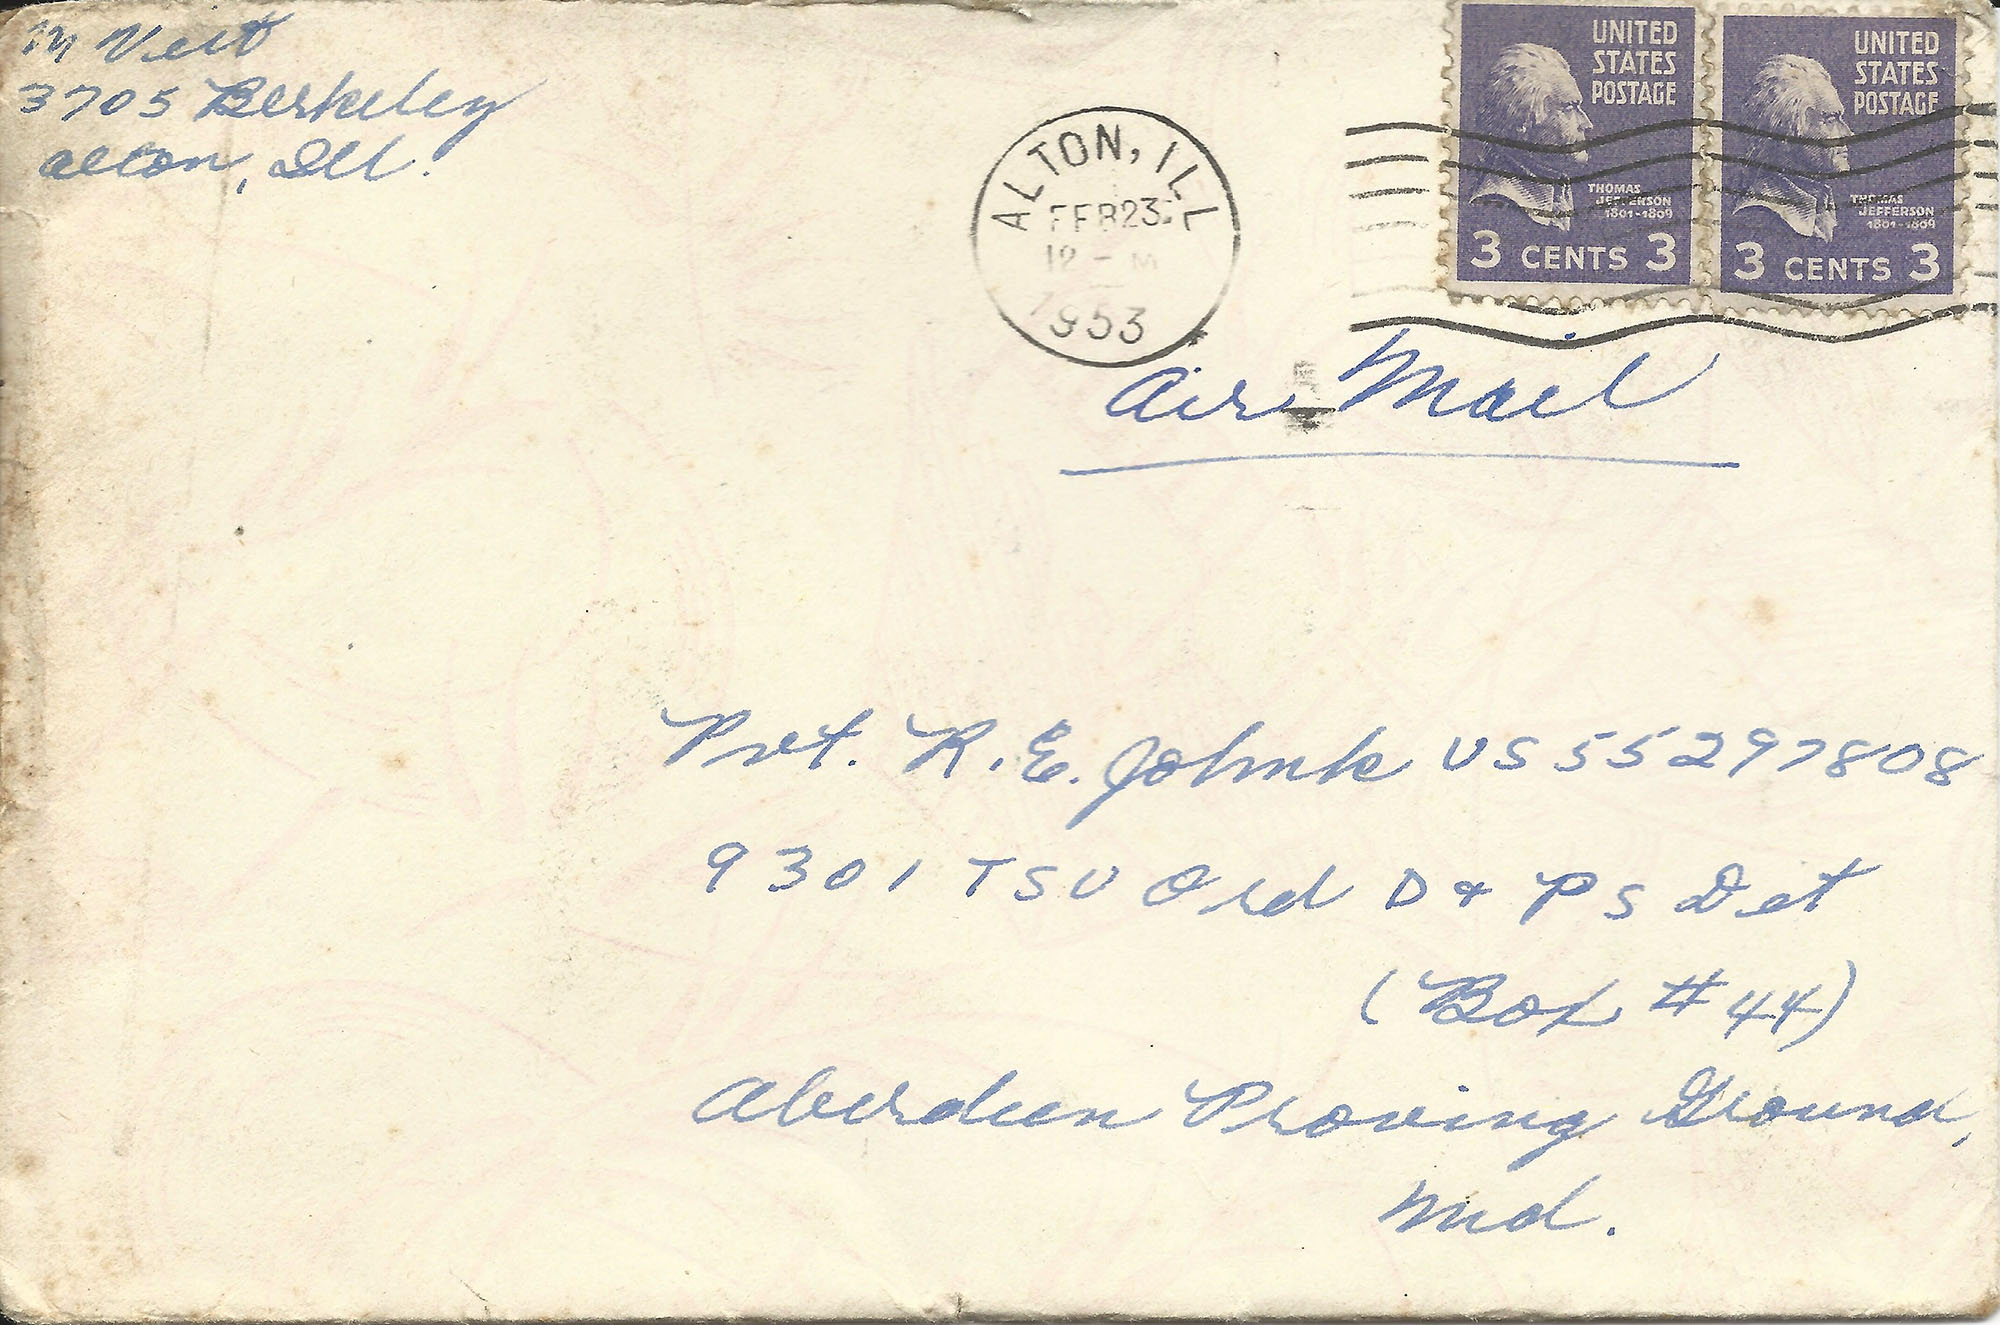 Feb. 22, 1953 (Marj) Envelope